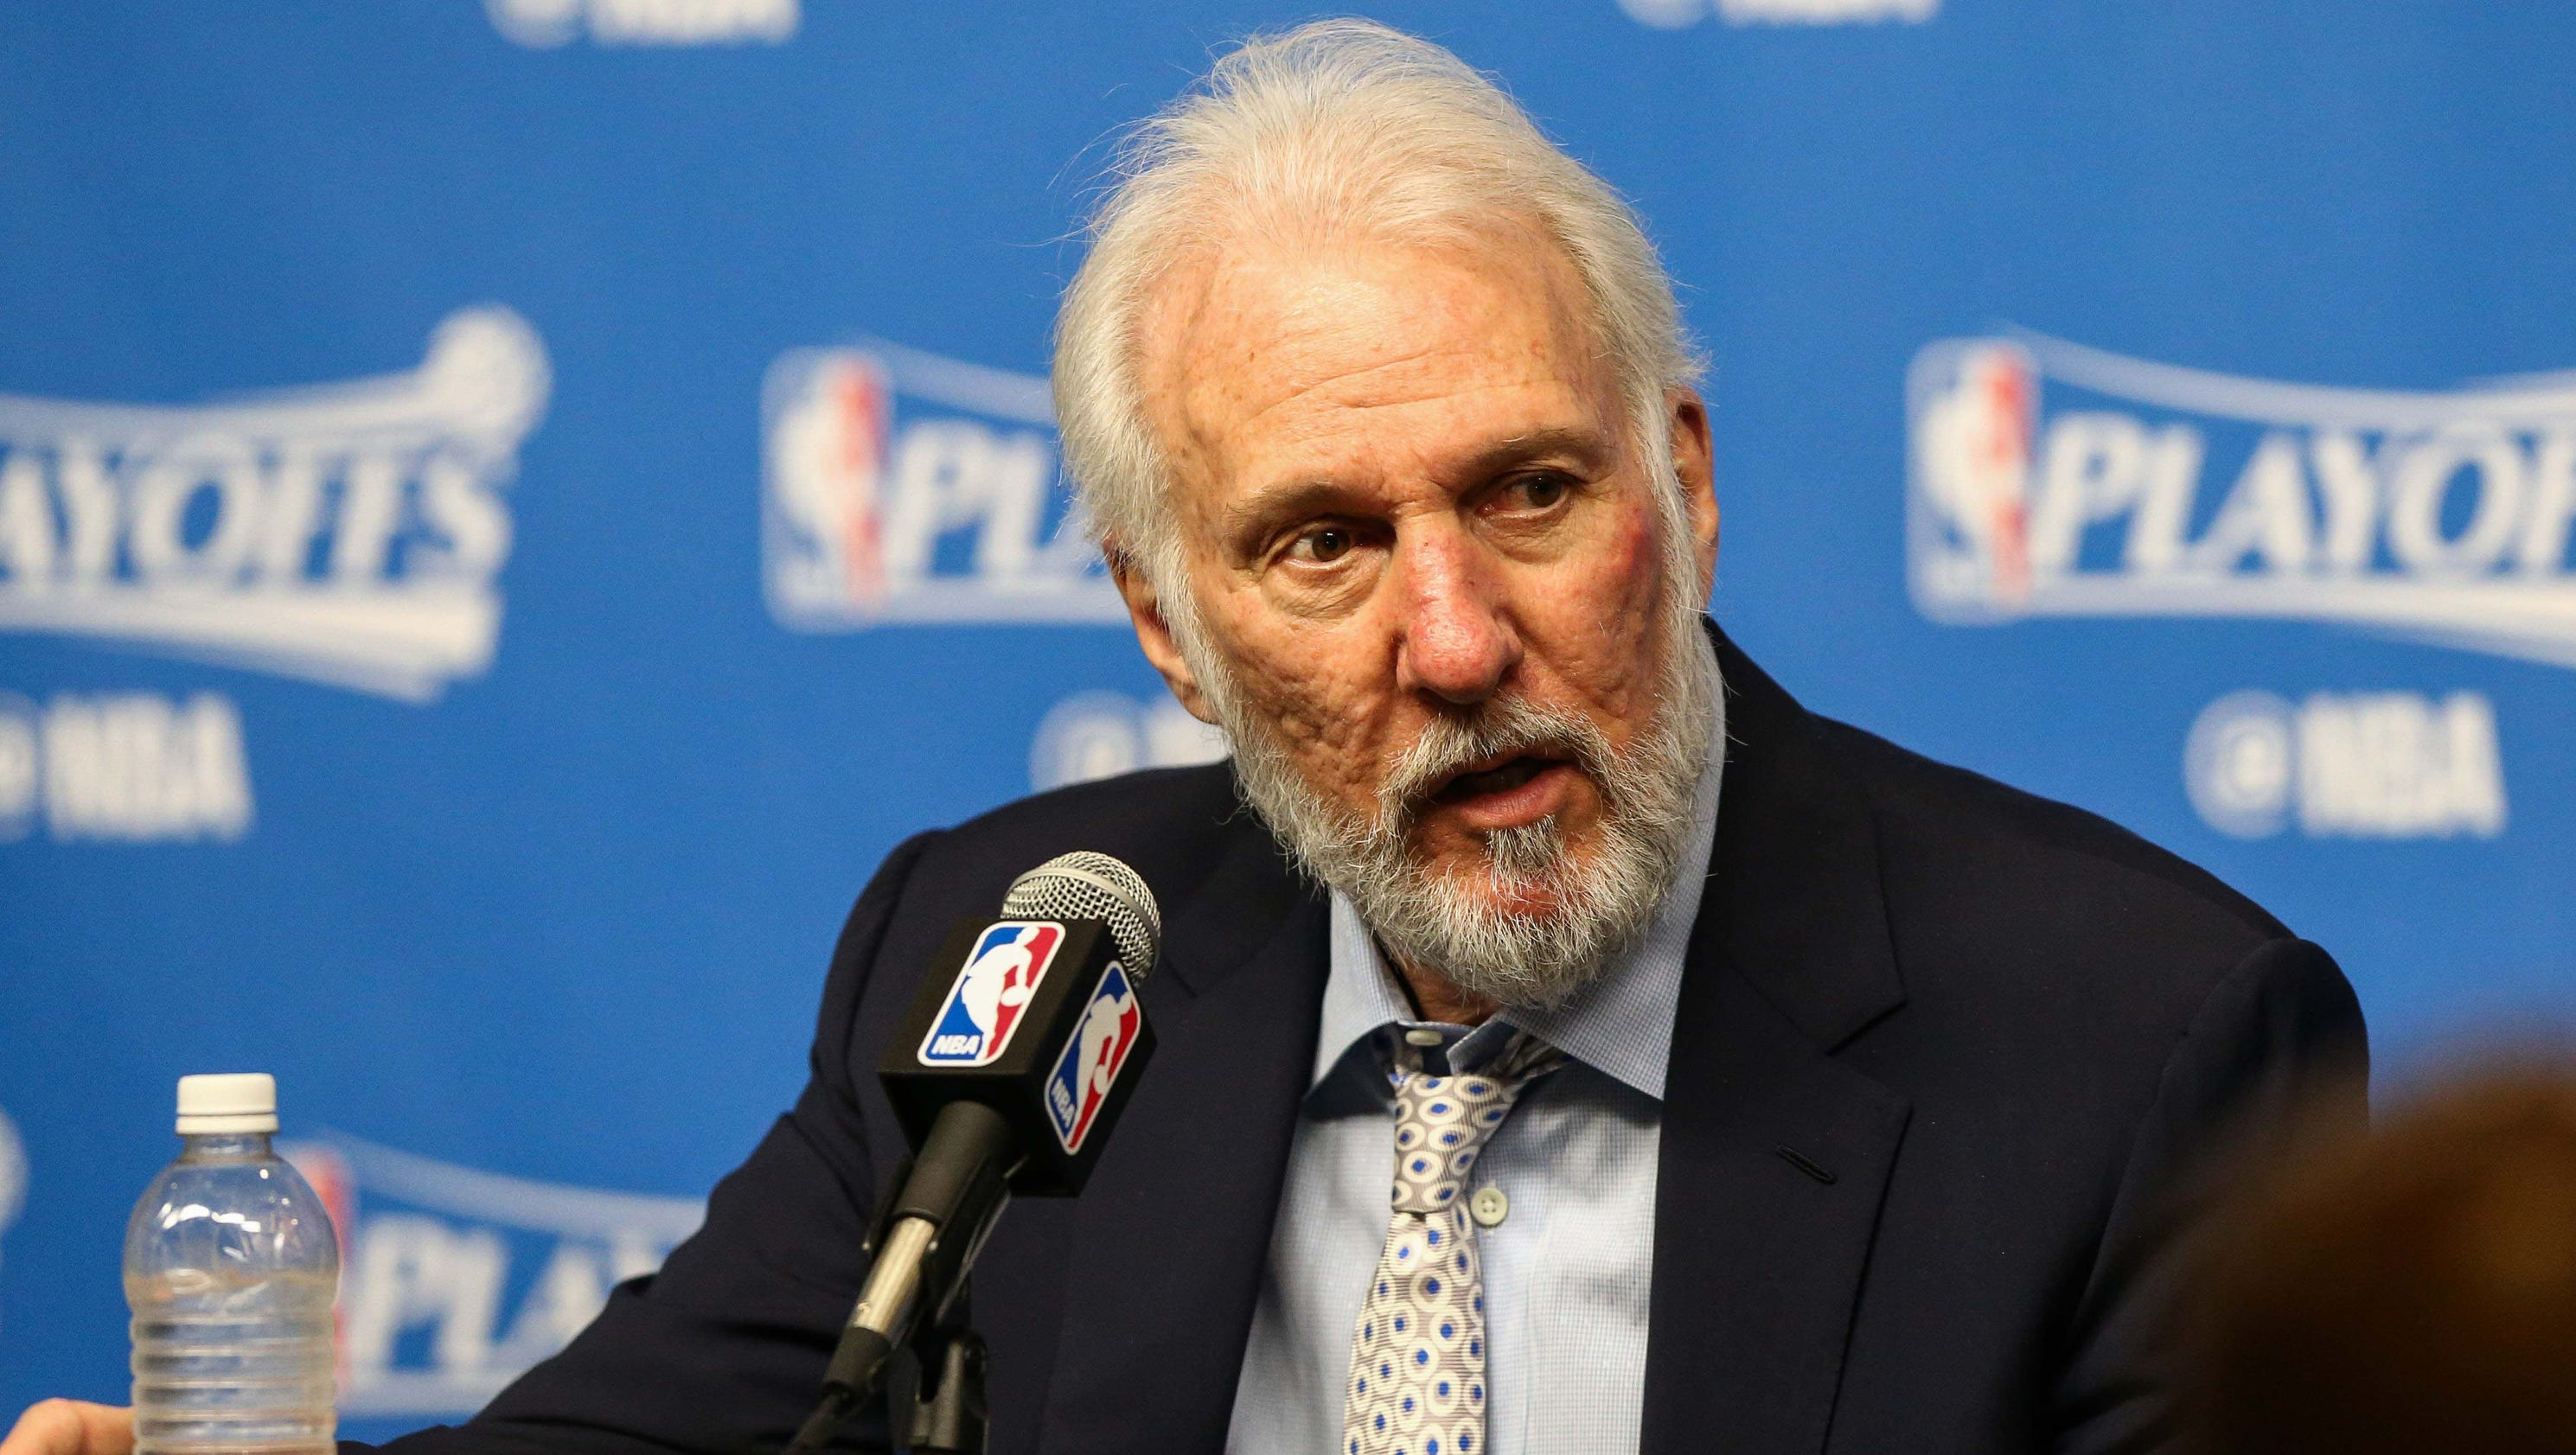 Lebron james continues to state case that gregg popovich is the best coach ever foxsports com - Lebron James Continues To State Case That Gregg Popovich Is The Best Coach Ever Foxsports Com 6